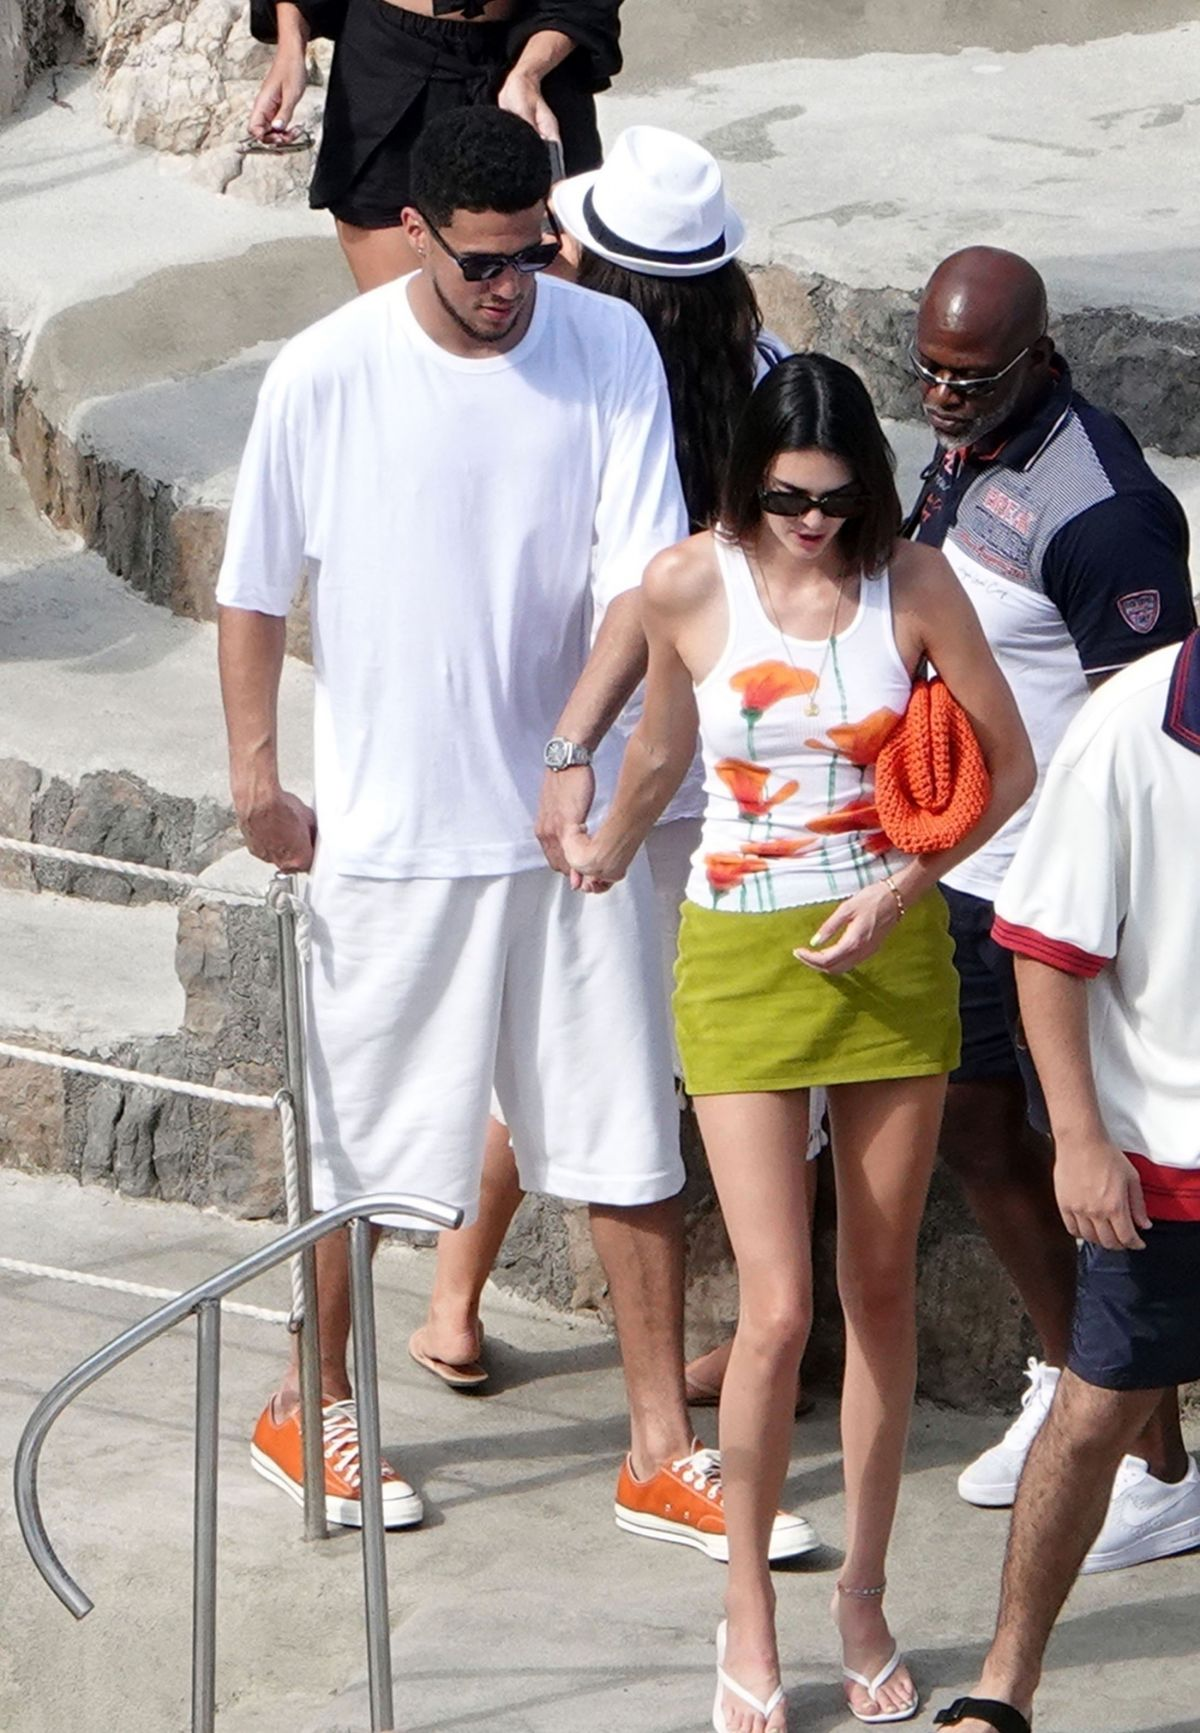 KENDALL JENNER and Devin Booker Out in Salerno 08/25/2021 – HawtCelebs